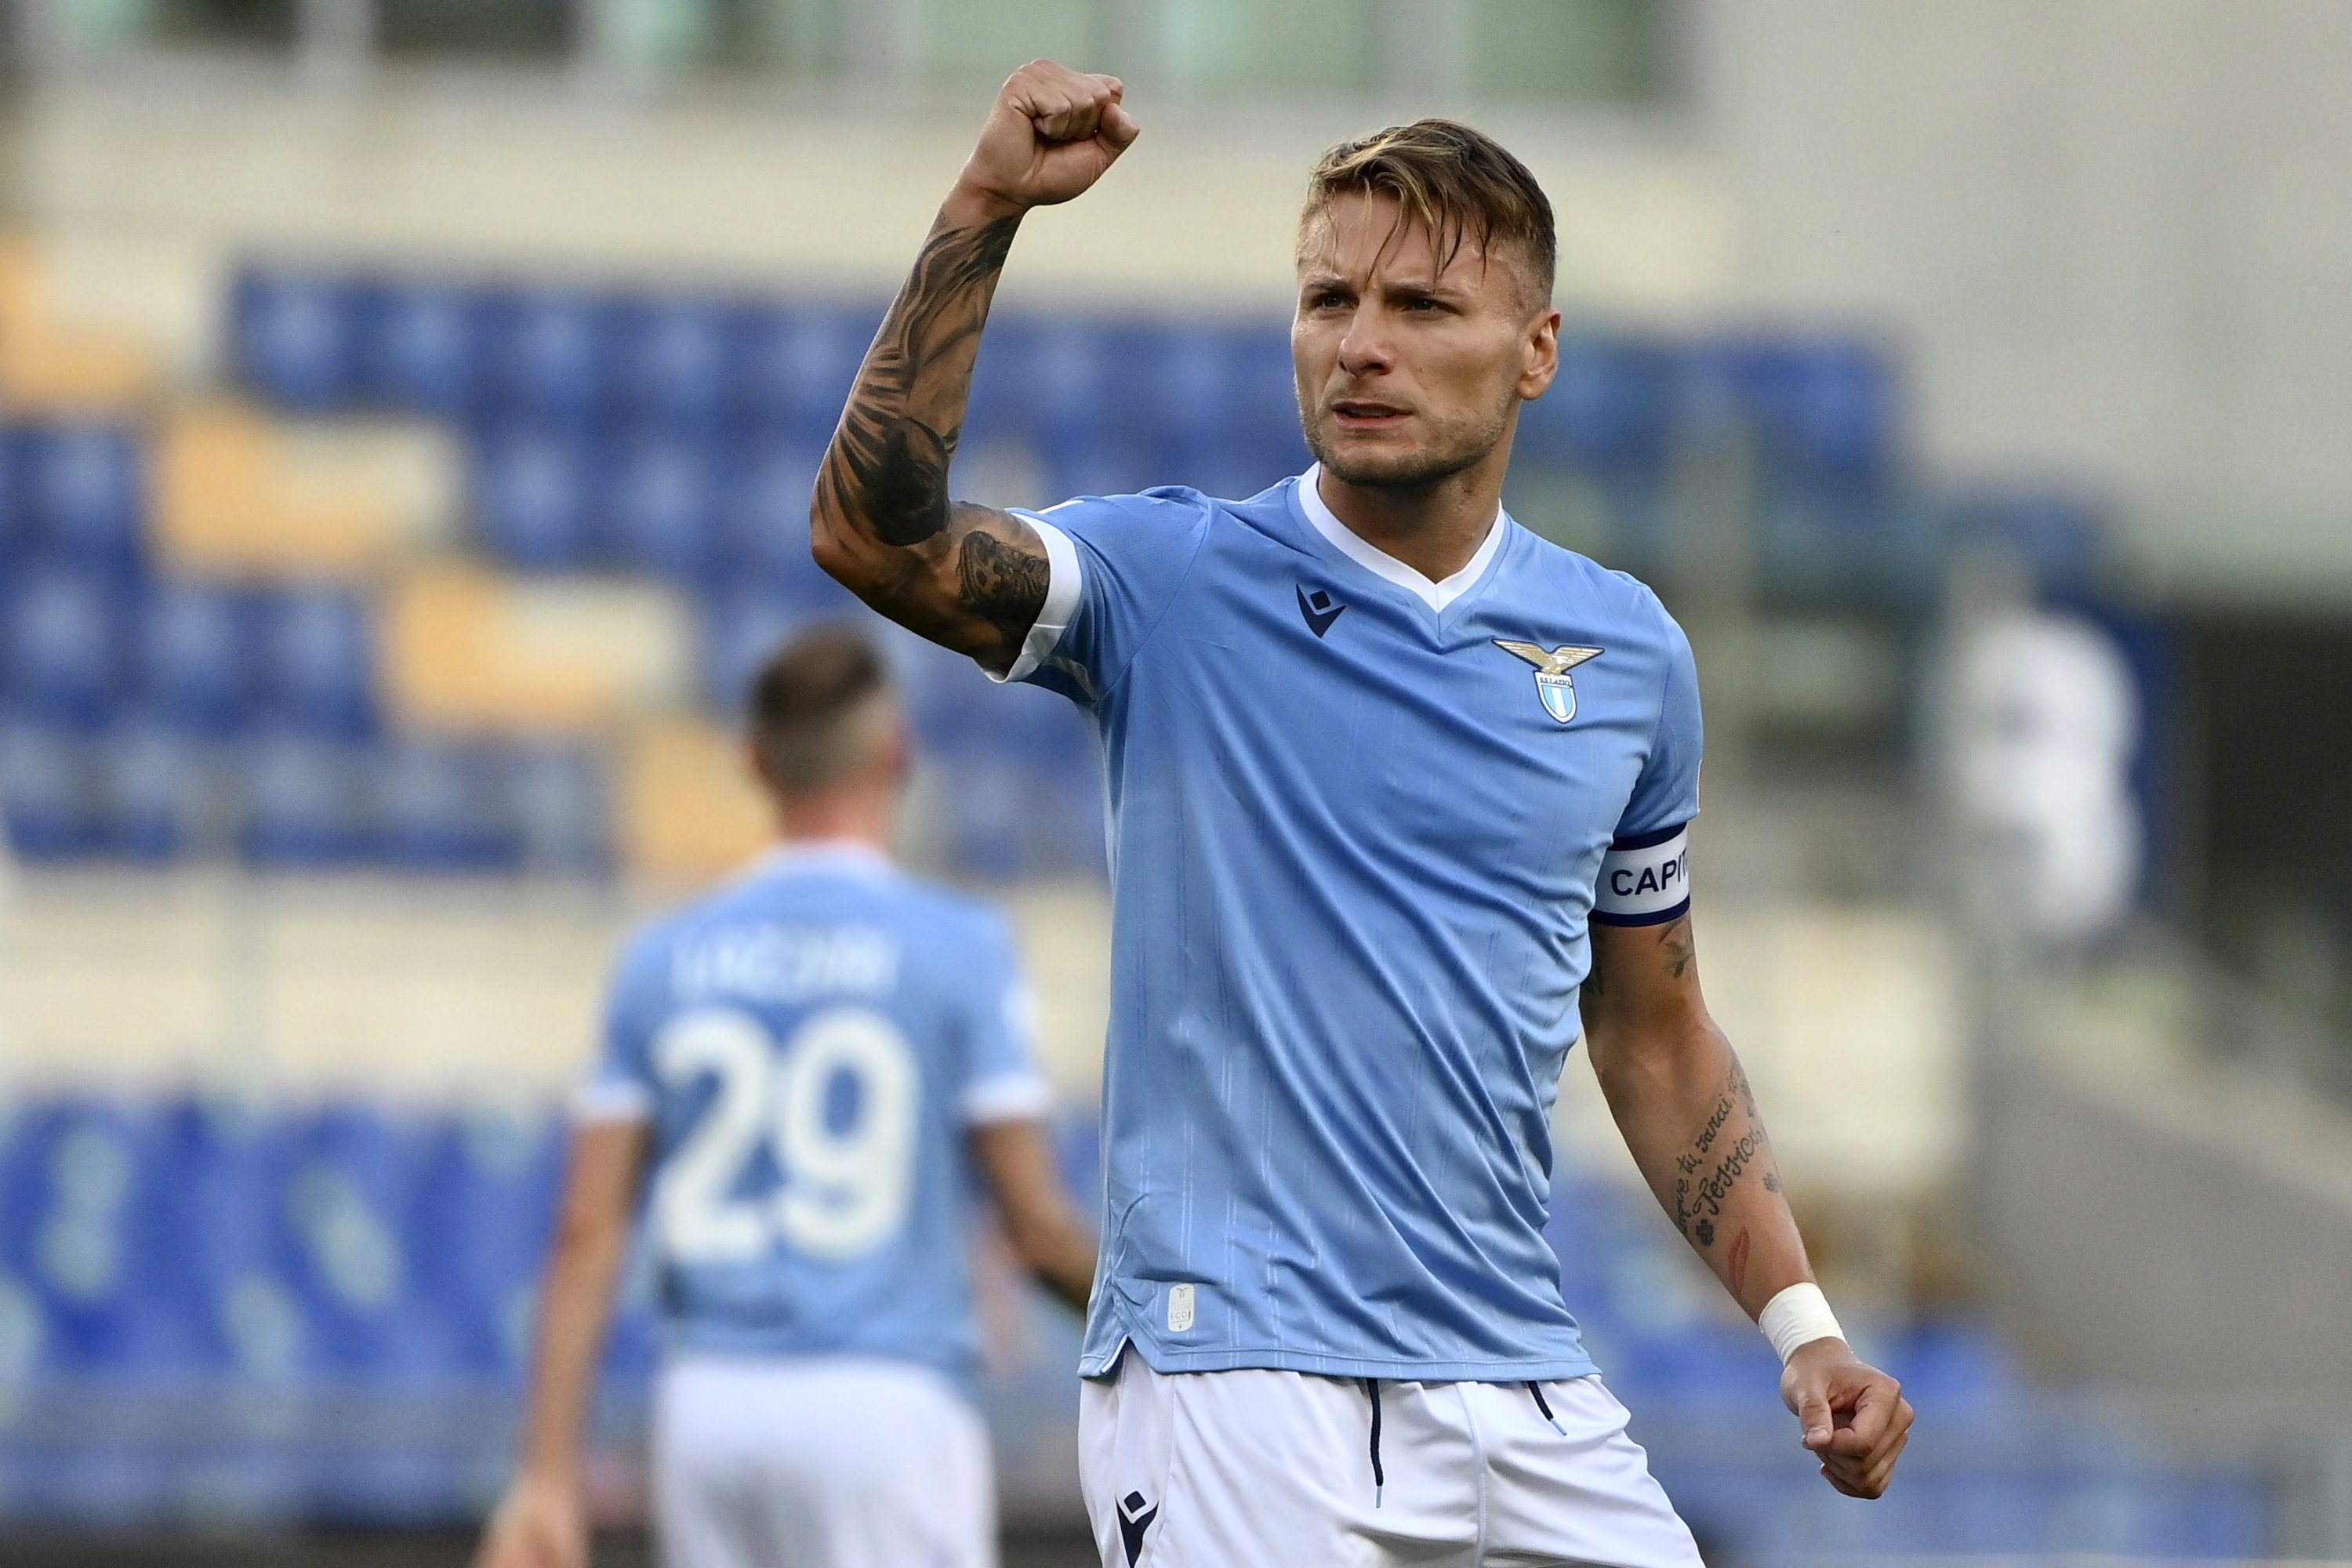 Lazio's Ciro Immobile celebrates after scoring his side's opening goal during a Serie A match against Spezia, at the Rome Olympic stadium, Saturday, Aug. 28, 2021. (AP Photo)